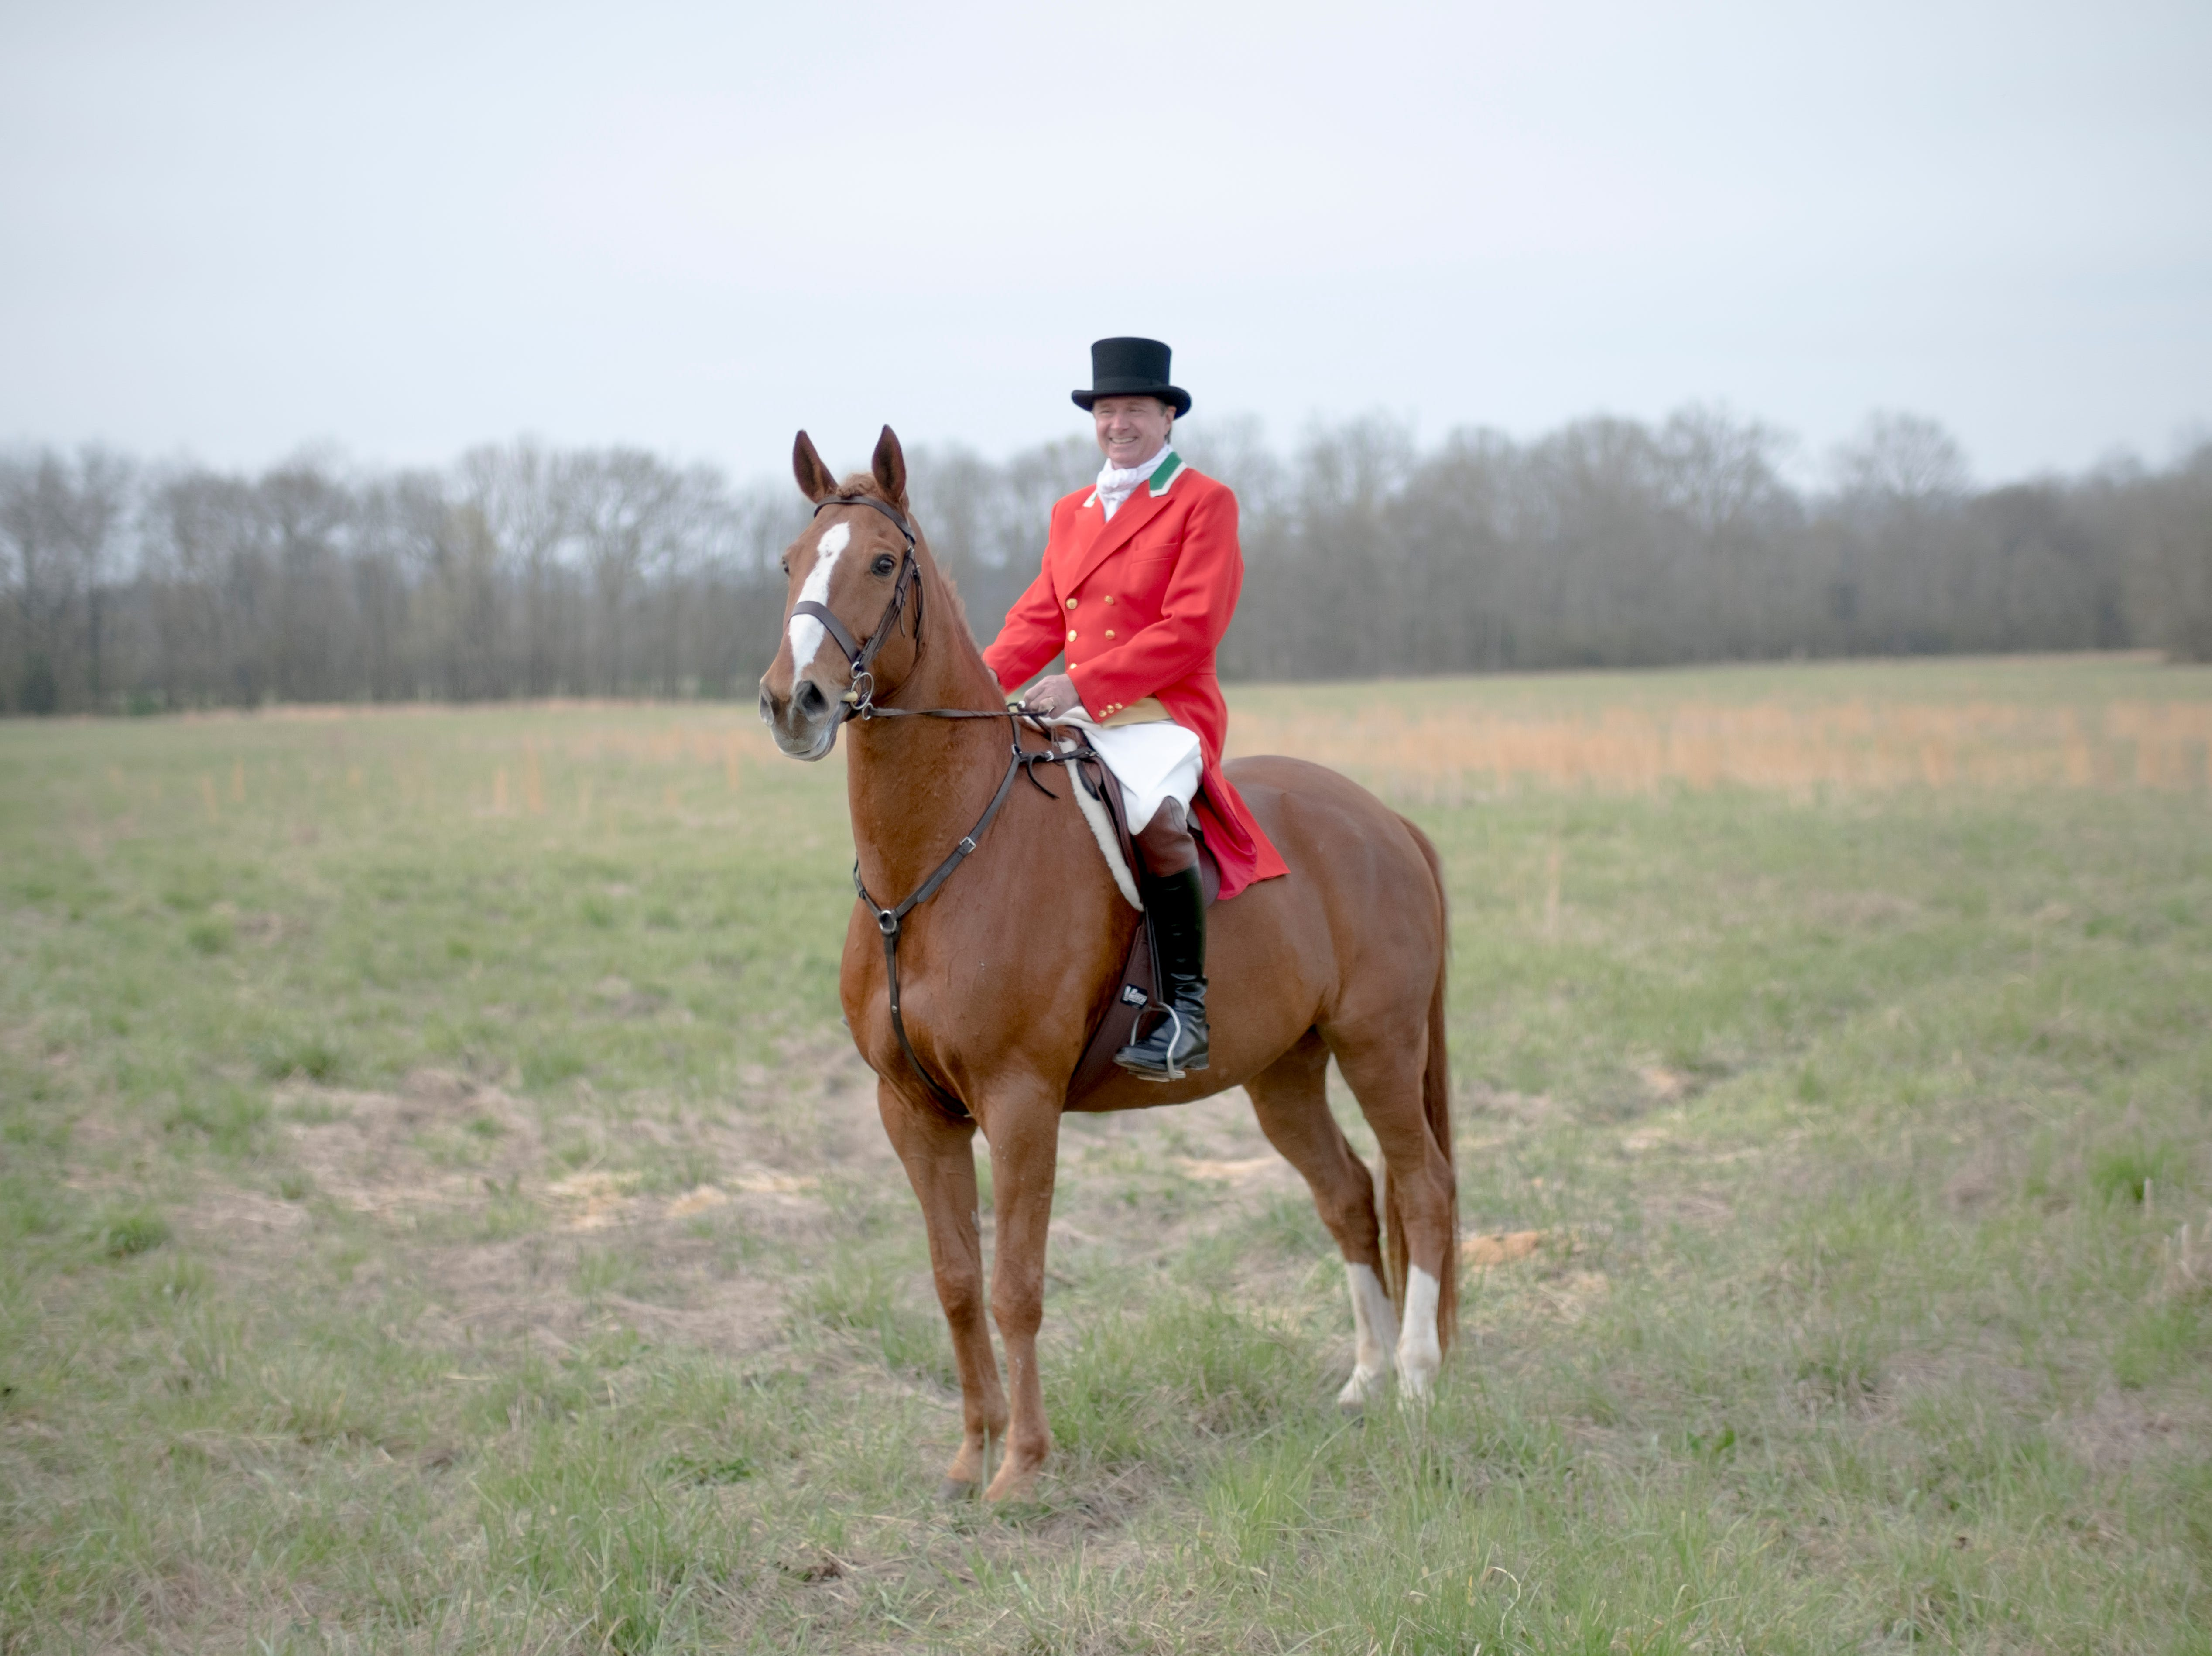 Scott Keeting, of Walland, arrives to the hunt meeting atop his horse during a fixture at Blackberry Ridge Farm in Greeneville, Tennessee on Saturday, March 30, 2019.